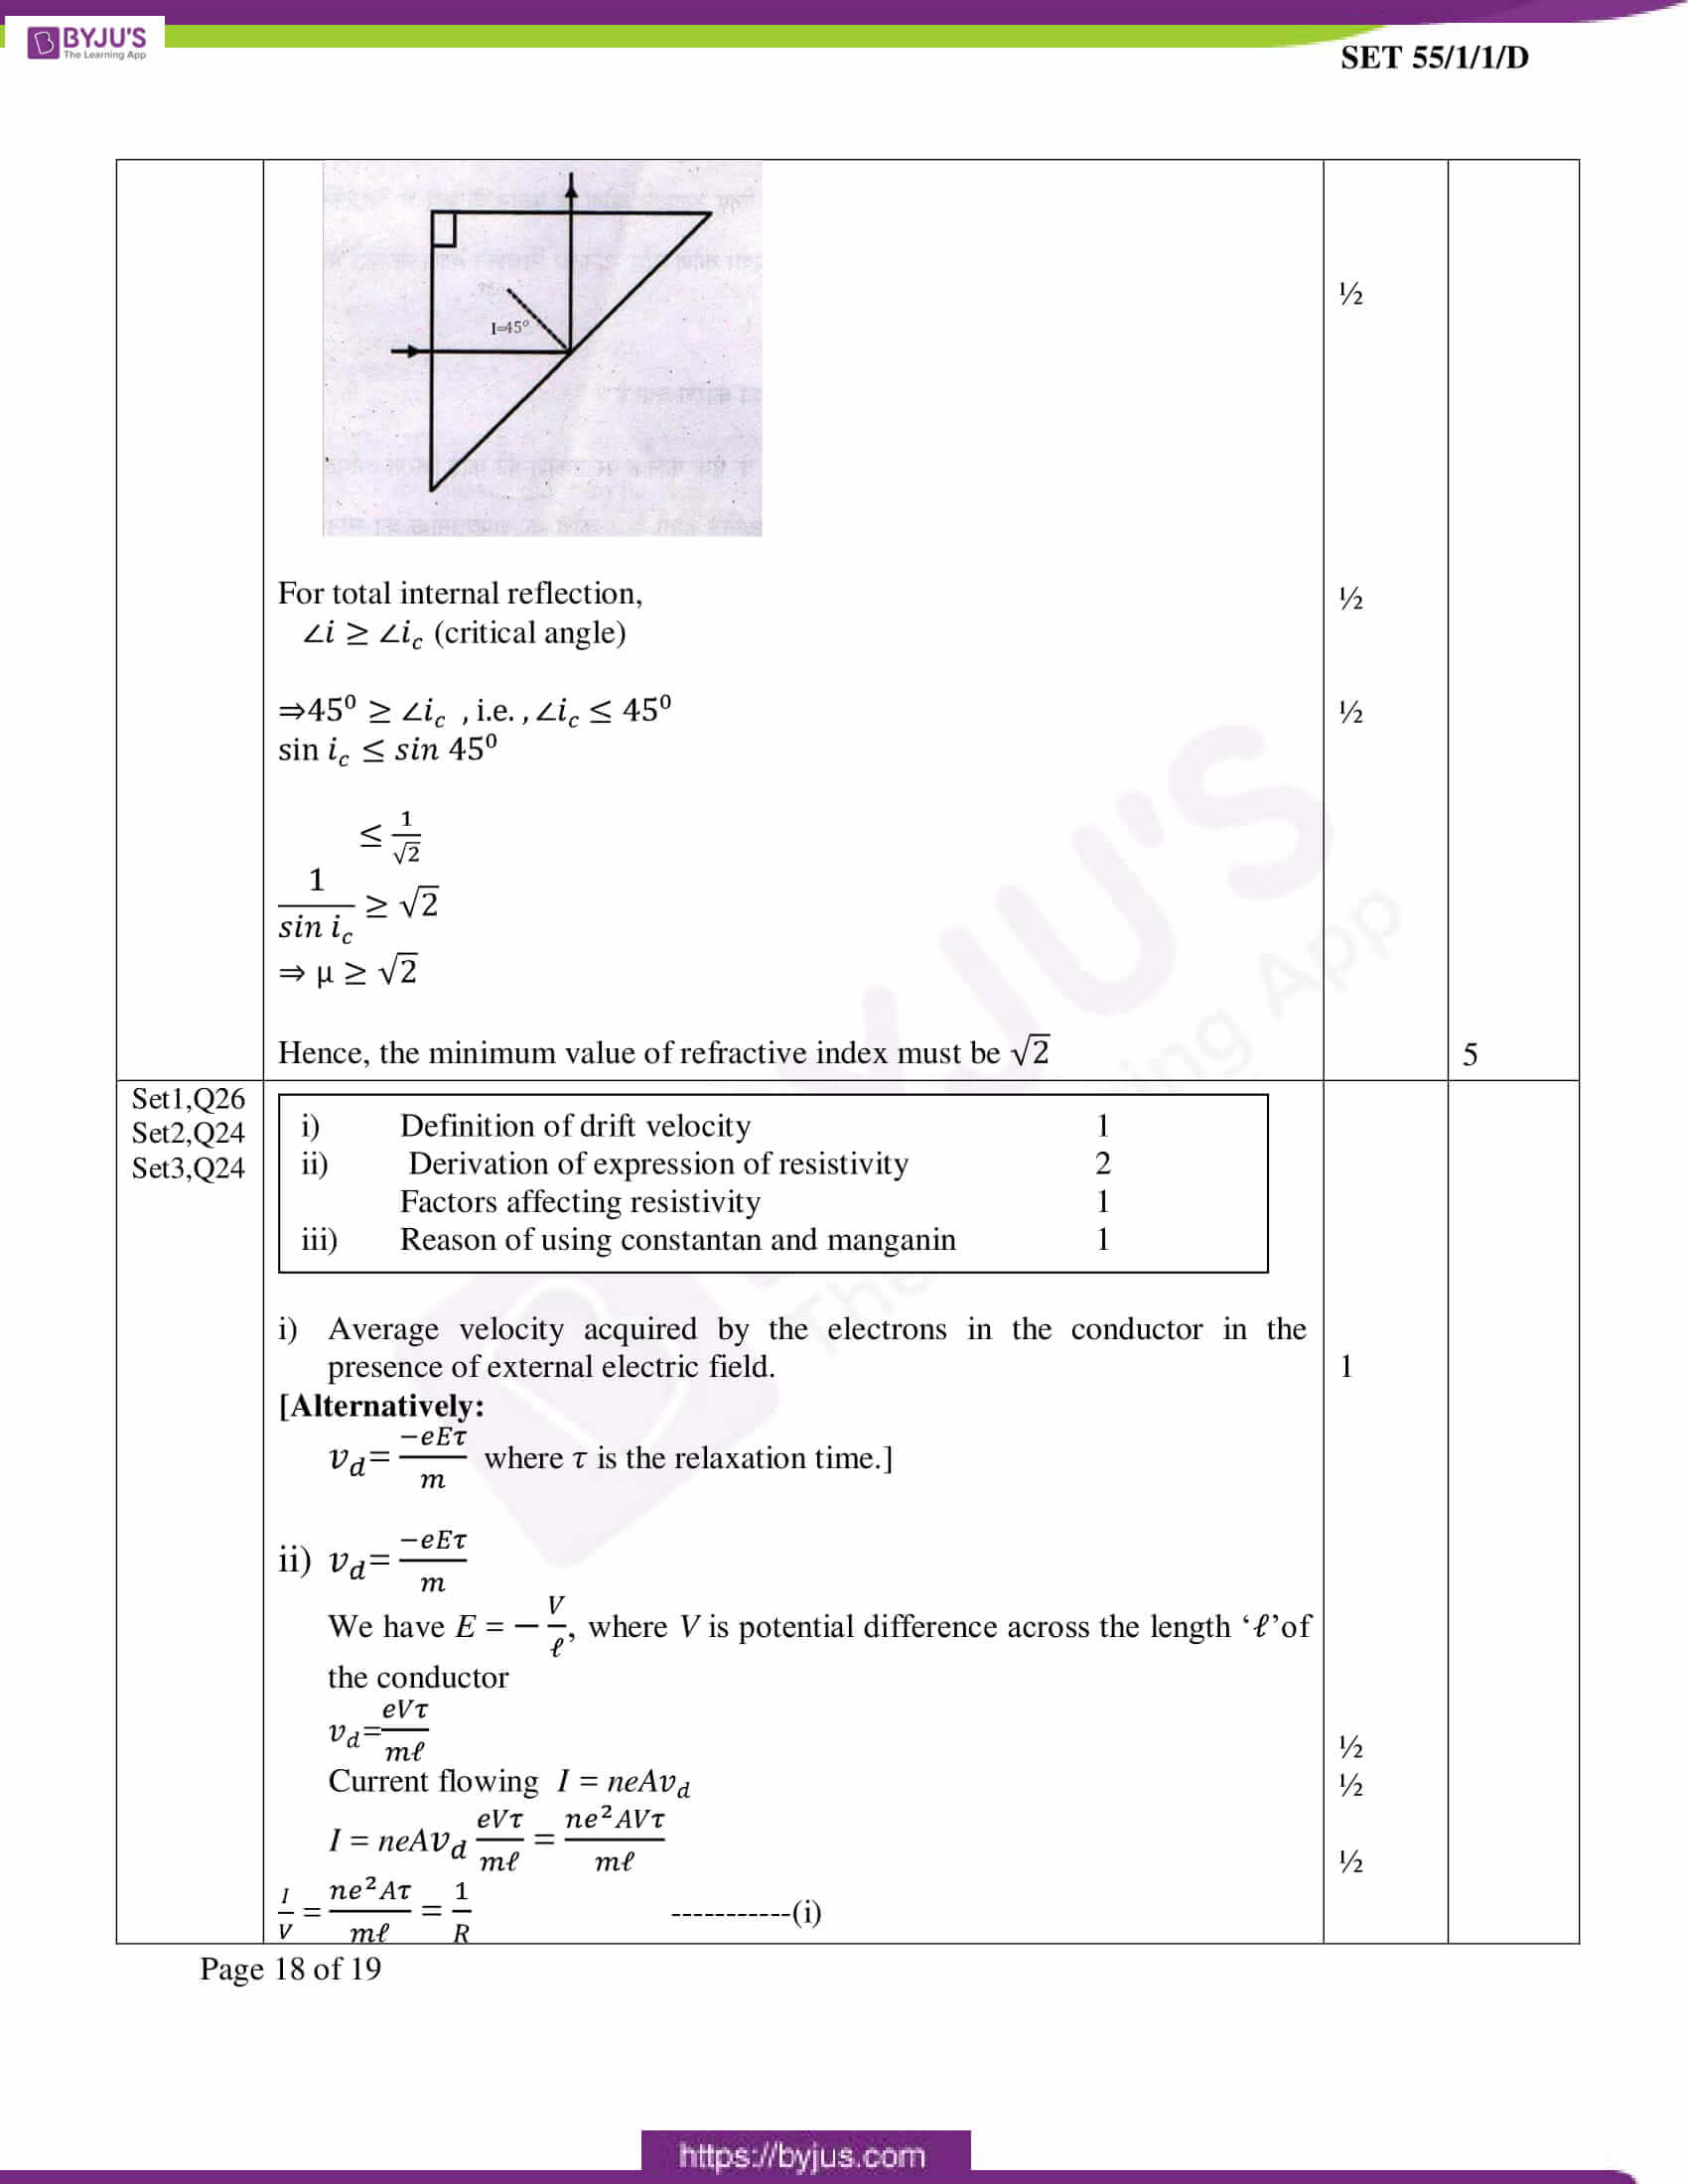 cbse class 12 phy 2016 solution set 1